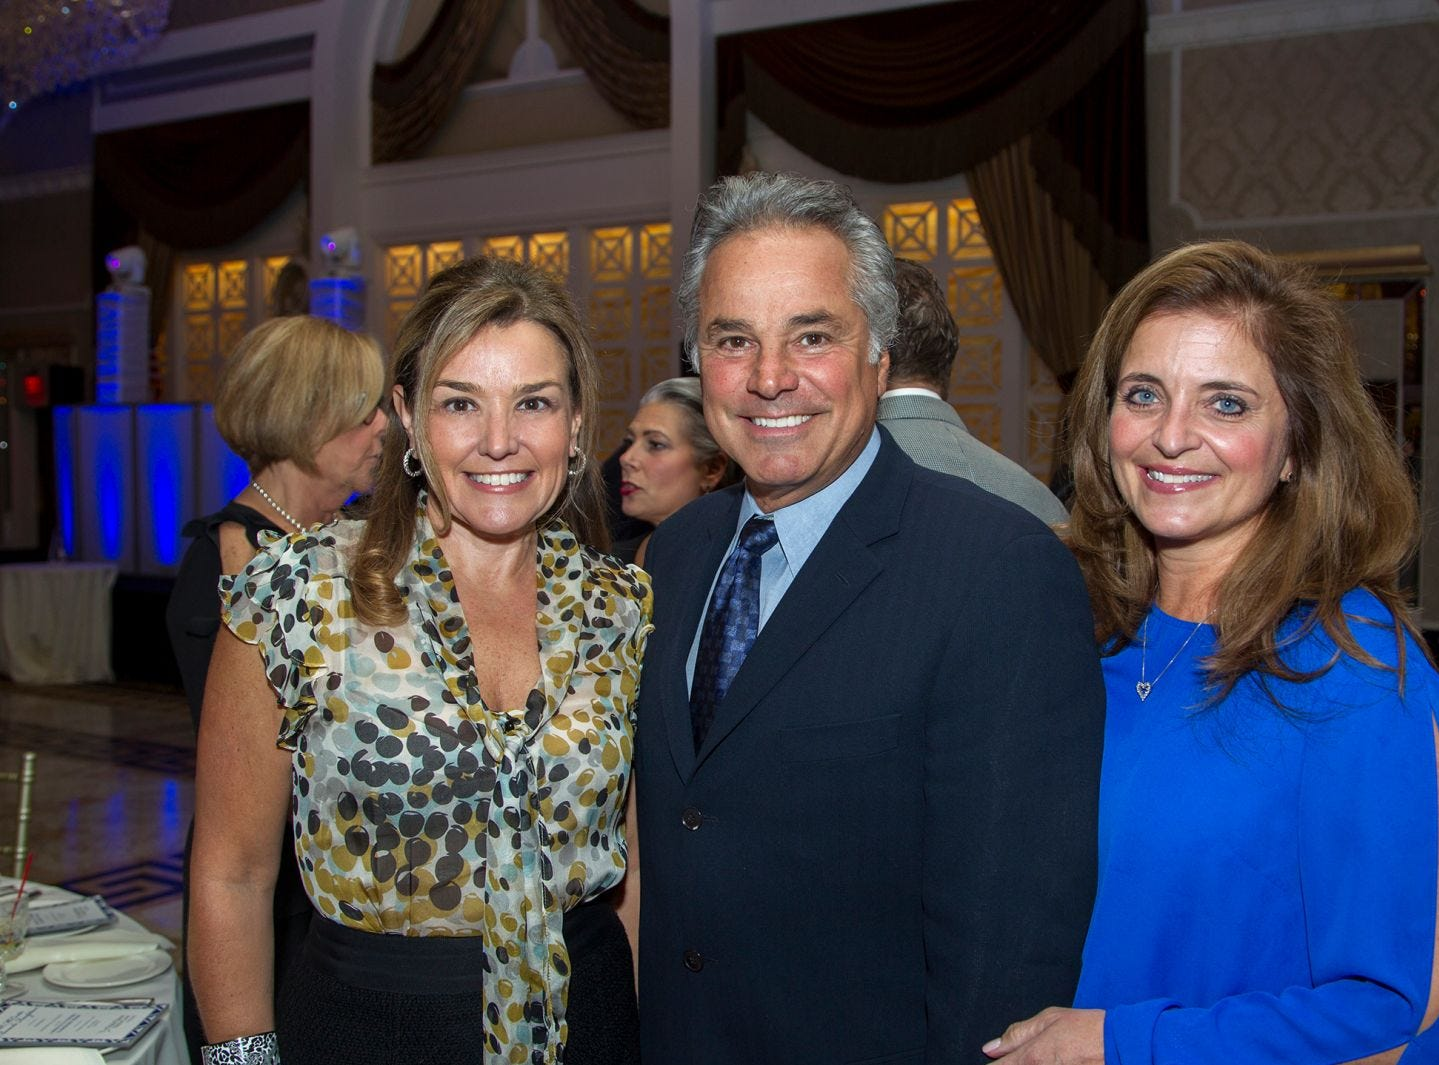 JoAnn Sanzari, Guy and Dawn Balzano. Holy Name Medical Center held its 2018 MS Center Awards Reception at the Venetian in Garfield. 10/23/2018